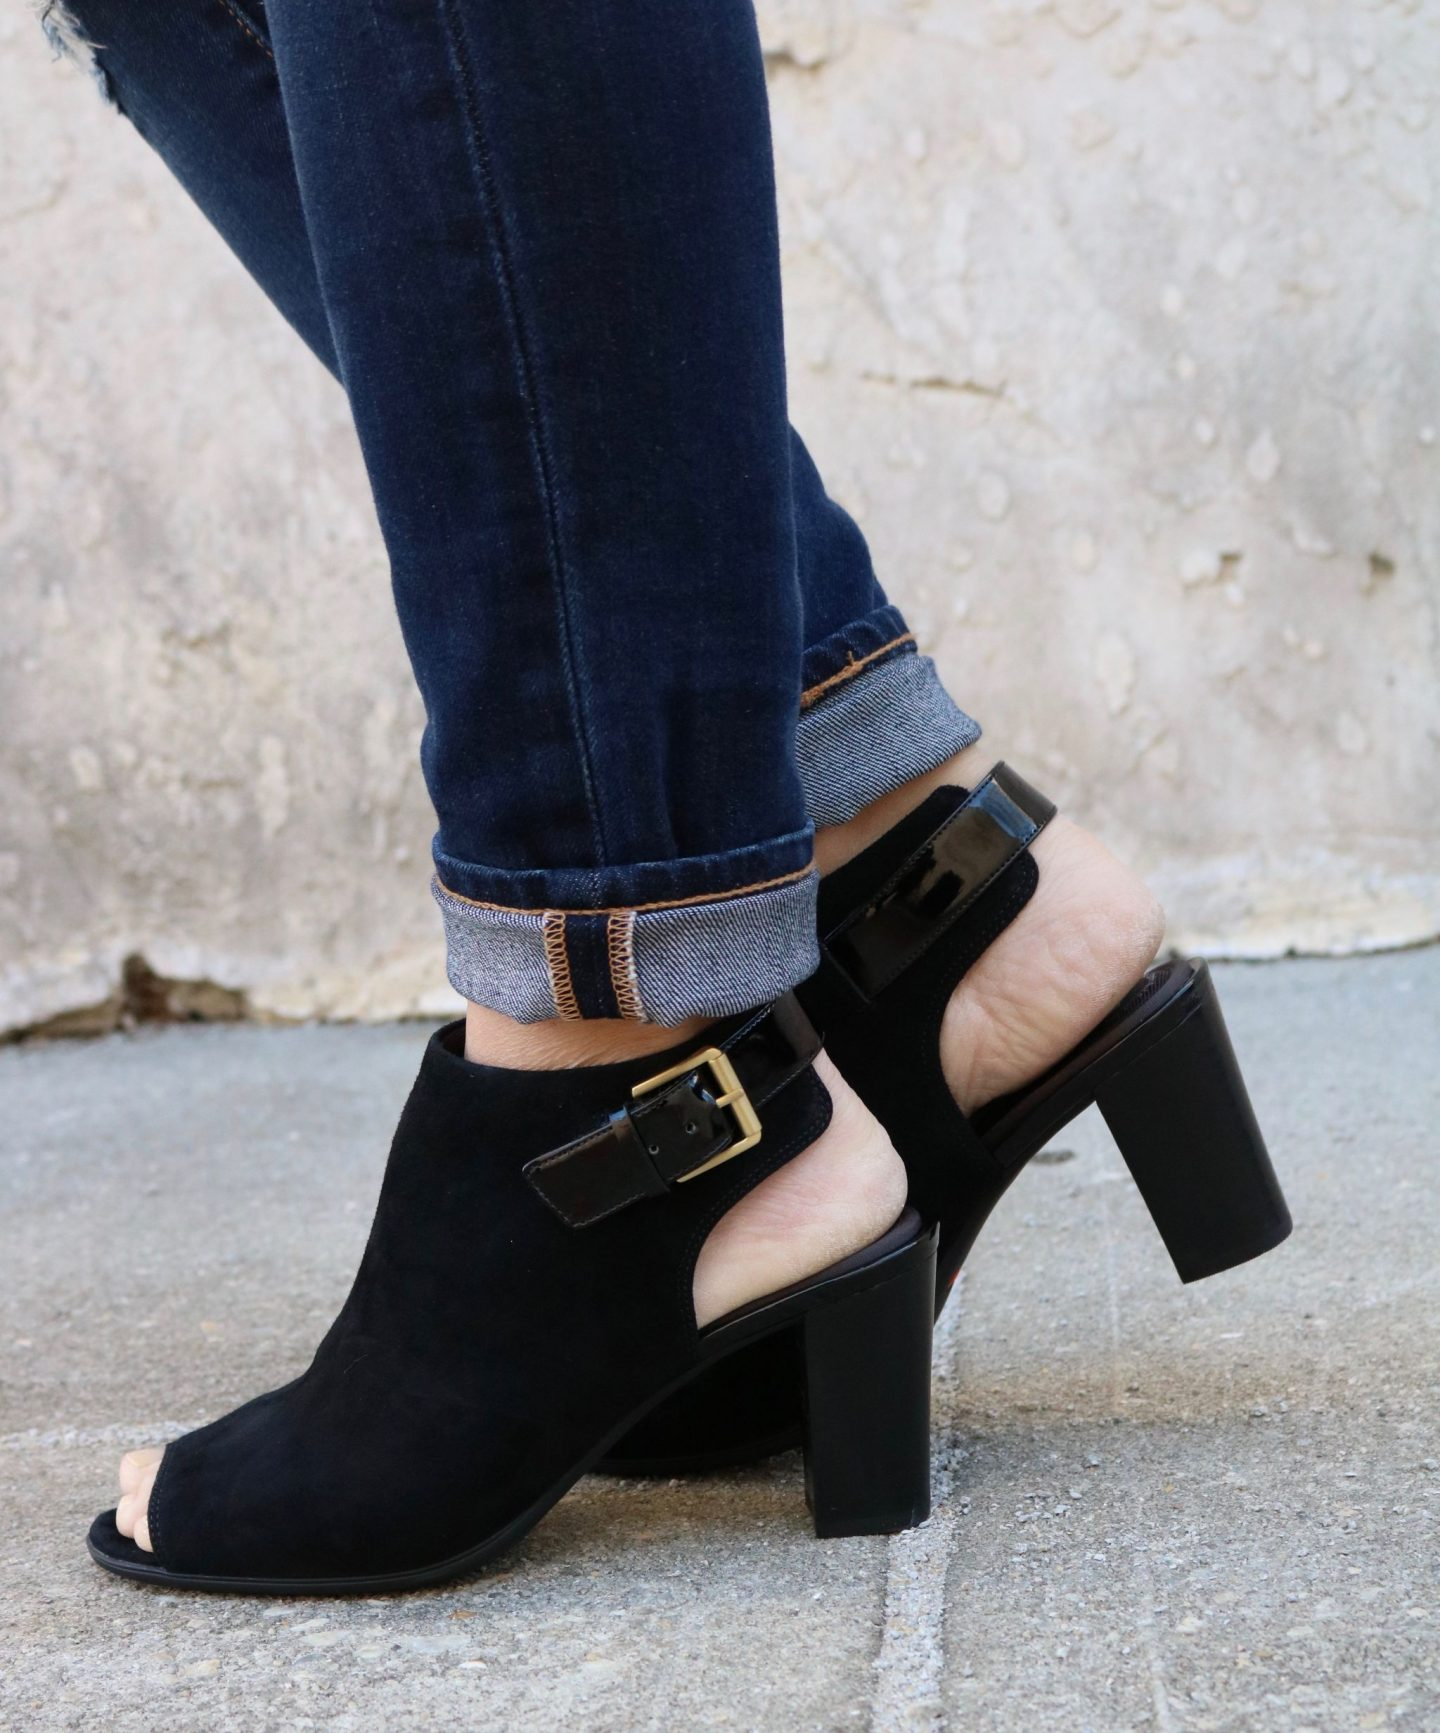 rockport heels with denim, settling southern, heeled sandals